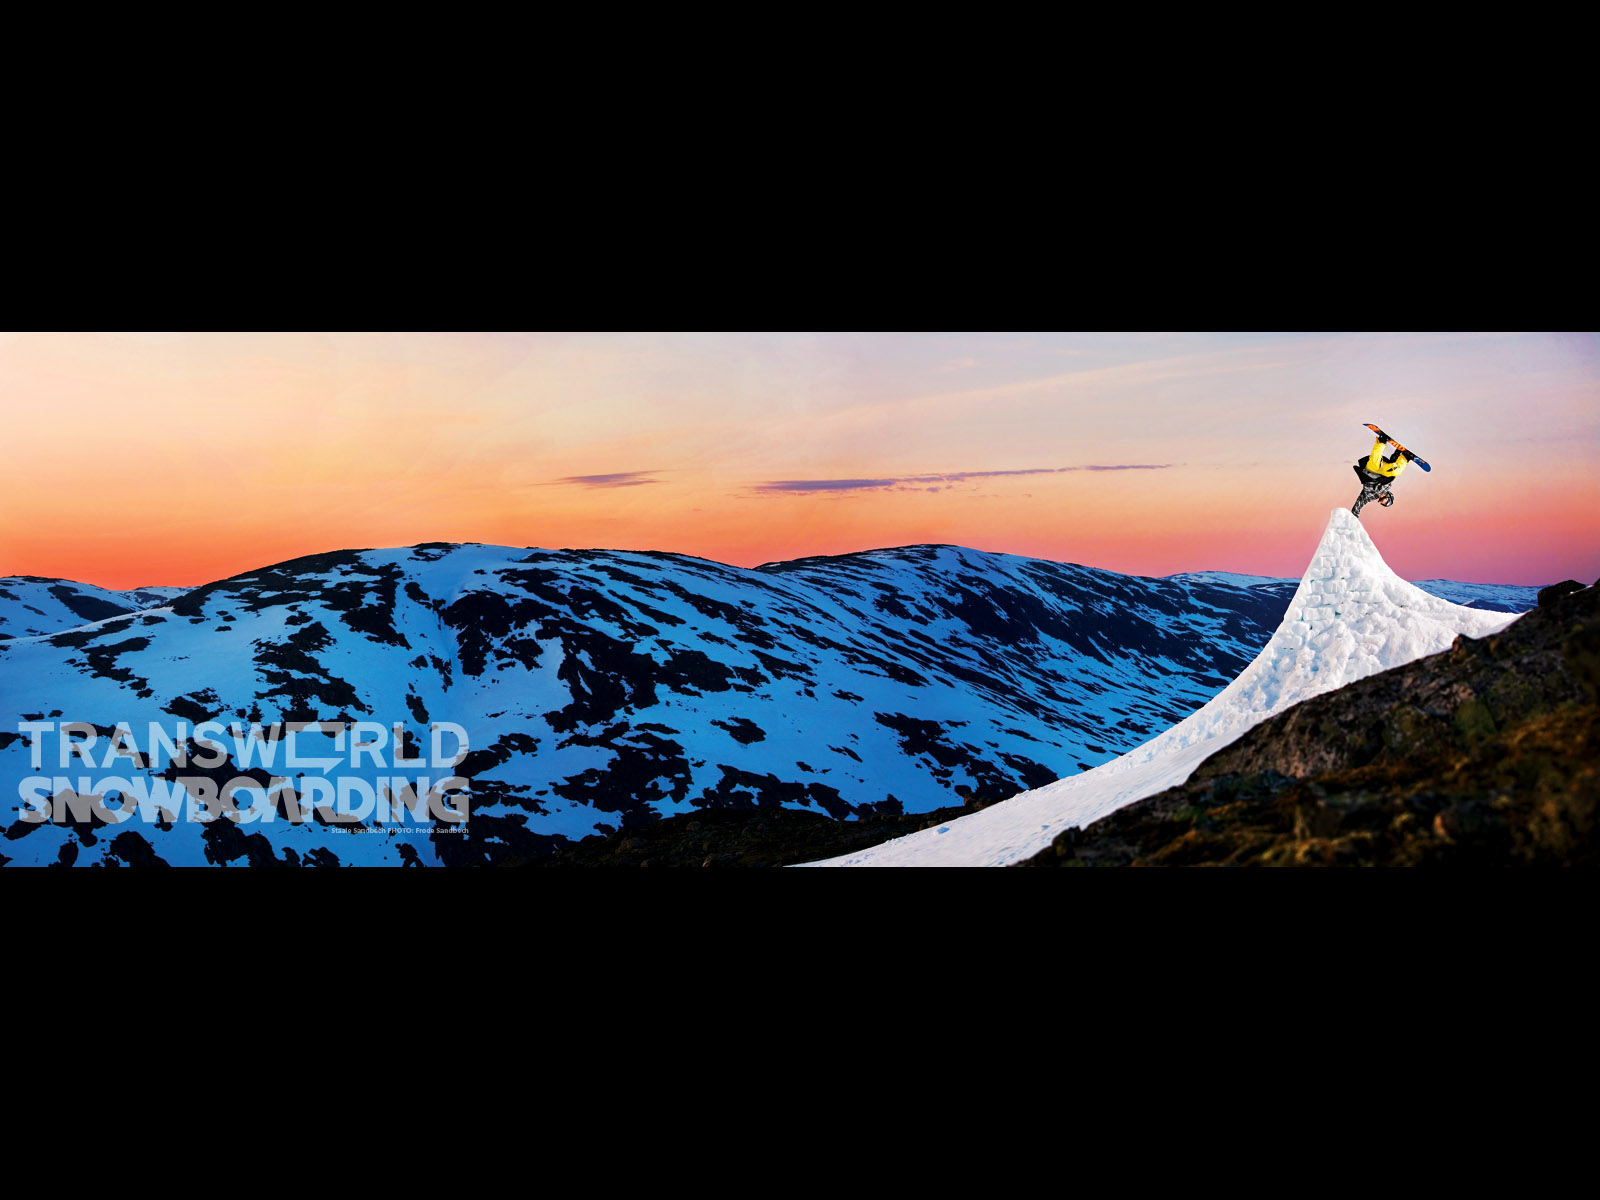 Wednesday Wallpaper Panoramics Transworld Snowboarding Desktop 1600x1200